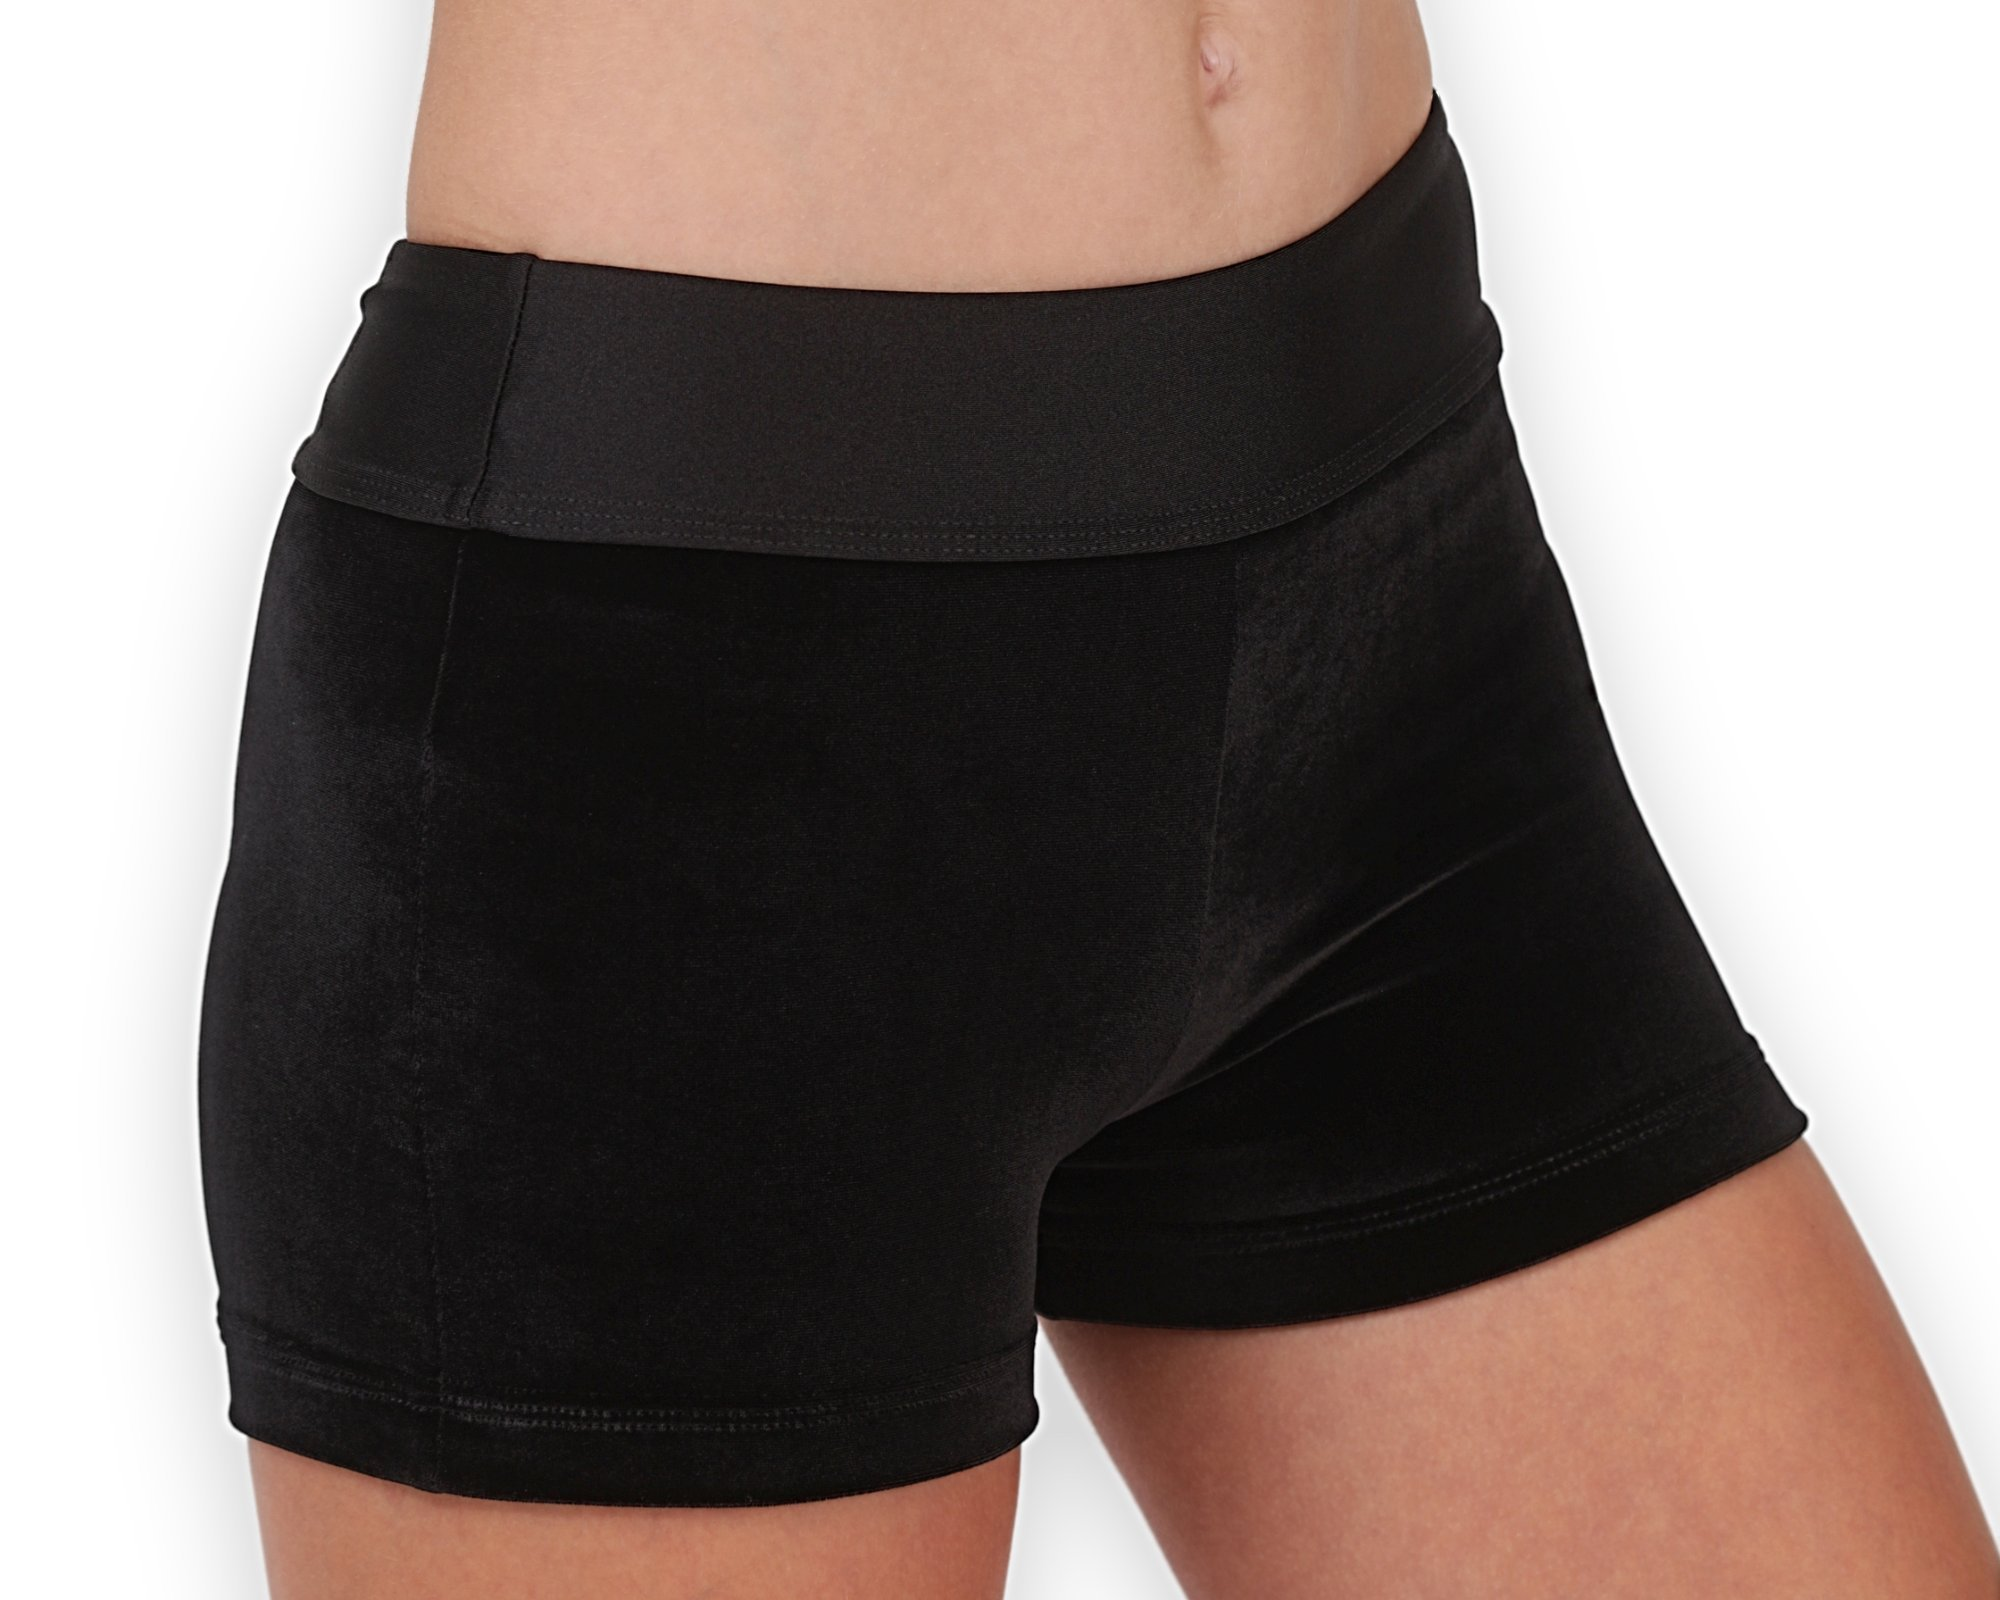 Leap Gear Gymnastics and Dance Shorts - Velvet/Black/Easy Care - C Small by Leap Gear